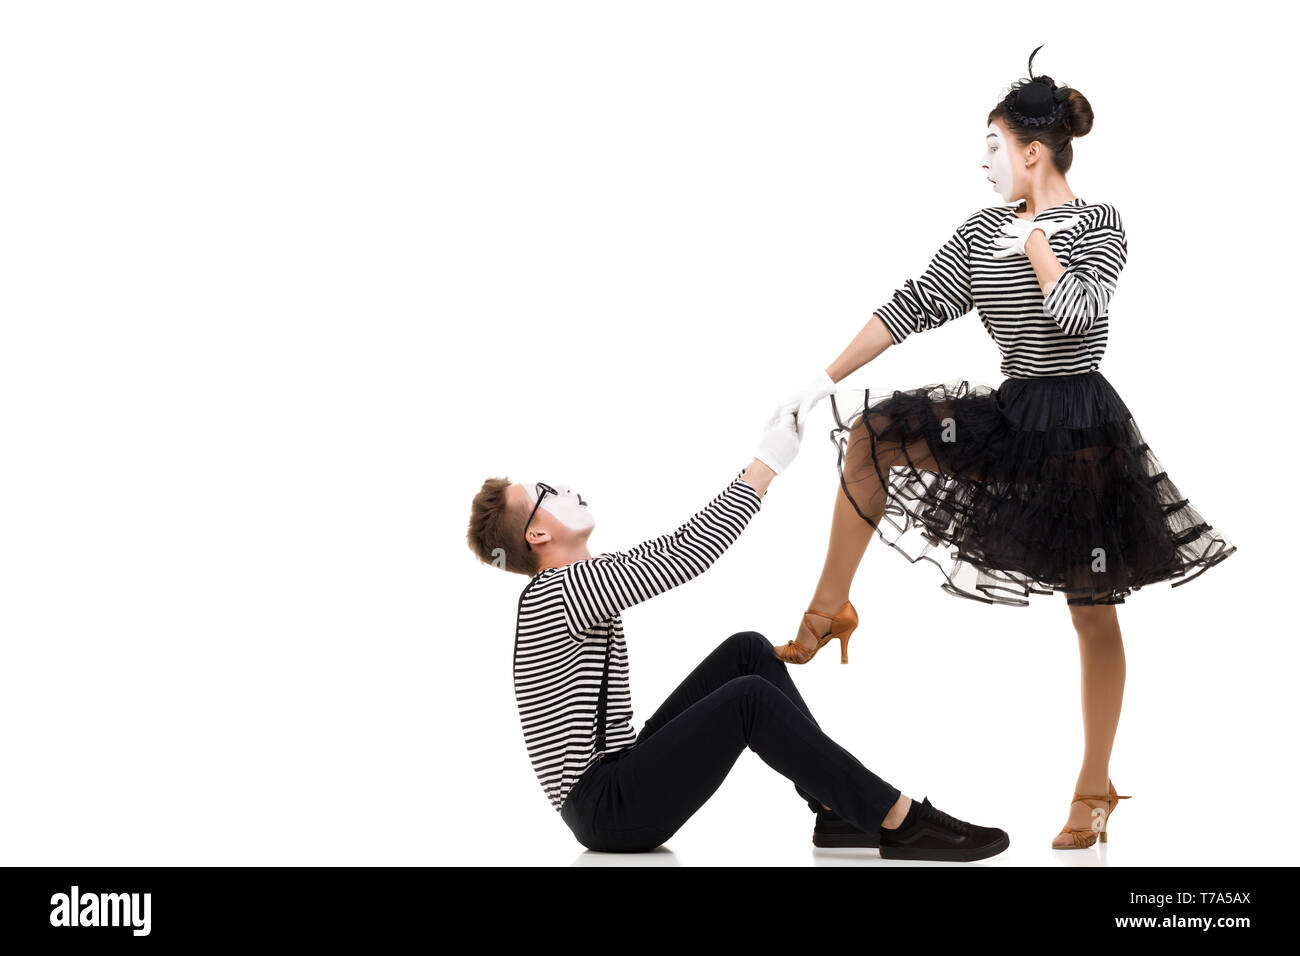 Smiling mimes in striped shirts. Man and woman dressed as actors of pantomime theater isolated on white background - Stock Image